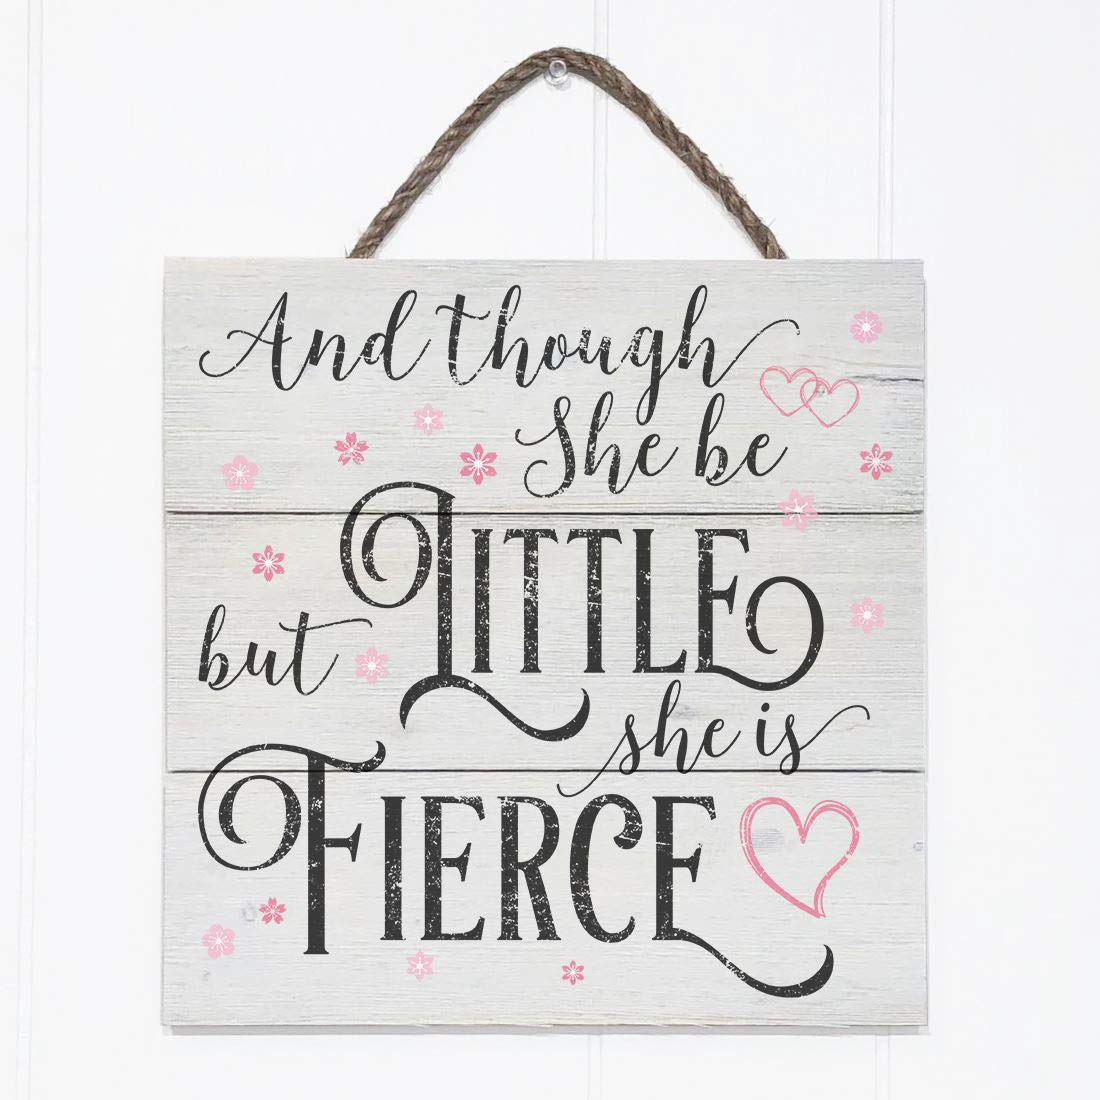 Artblox Rustic Nursery Room Sign And Though She Be but Little She is Fierce Quotes, Hearts & Flowers Ornaments Artwork, Barn Wood Pallet Farmhouse Wooden Plaque Art Print, 10.5x10.5 - White by Artblox